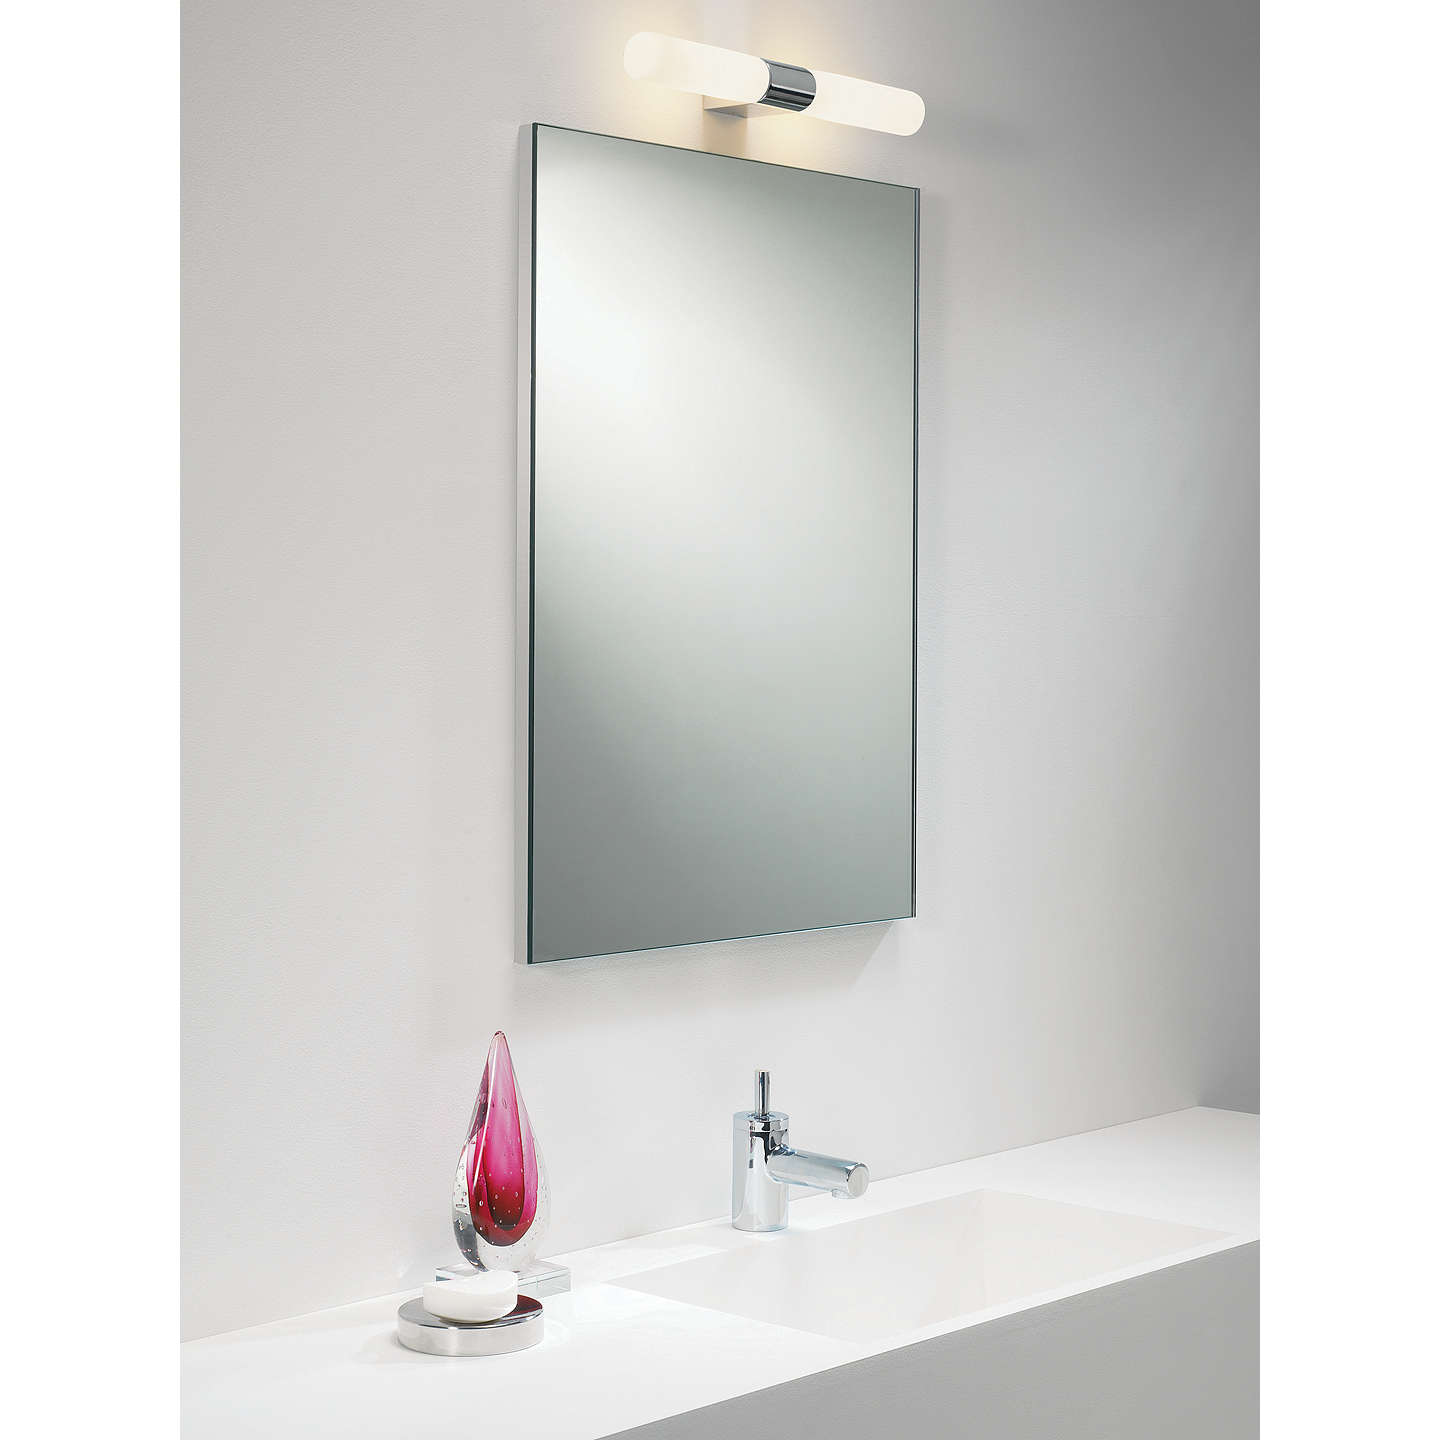 cool function using cabinet duo designs square three sink mirror faucet with panels style bathroom over and contemporary providing in storage stainless units cabinets vanity